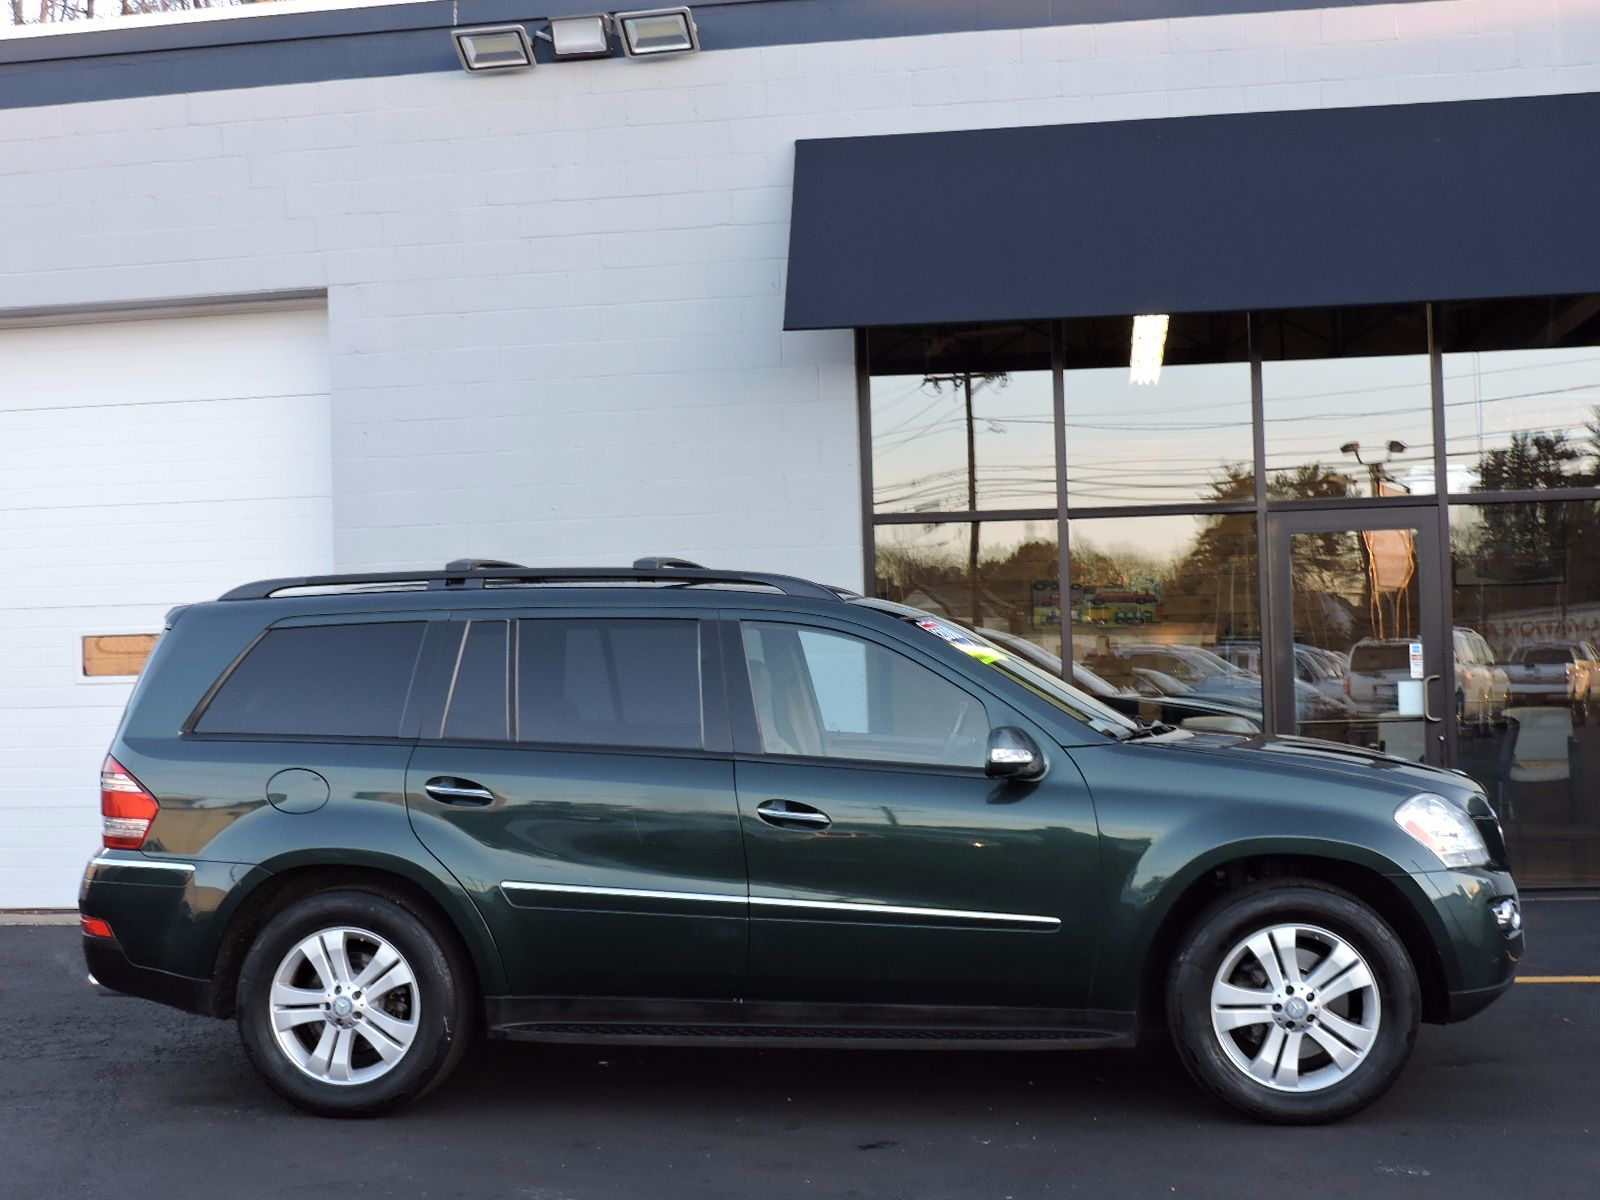 Used 2008 mercedes benz gl class 4 6l at auto house usa saugus for 2008 mercedes benz gl class